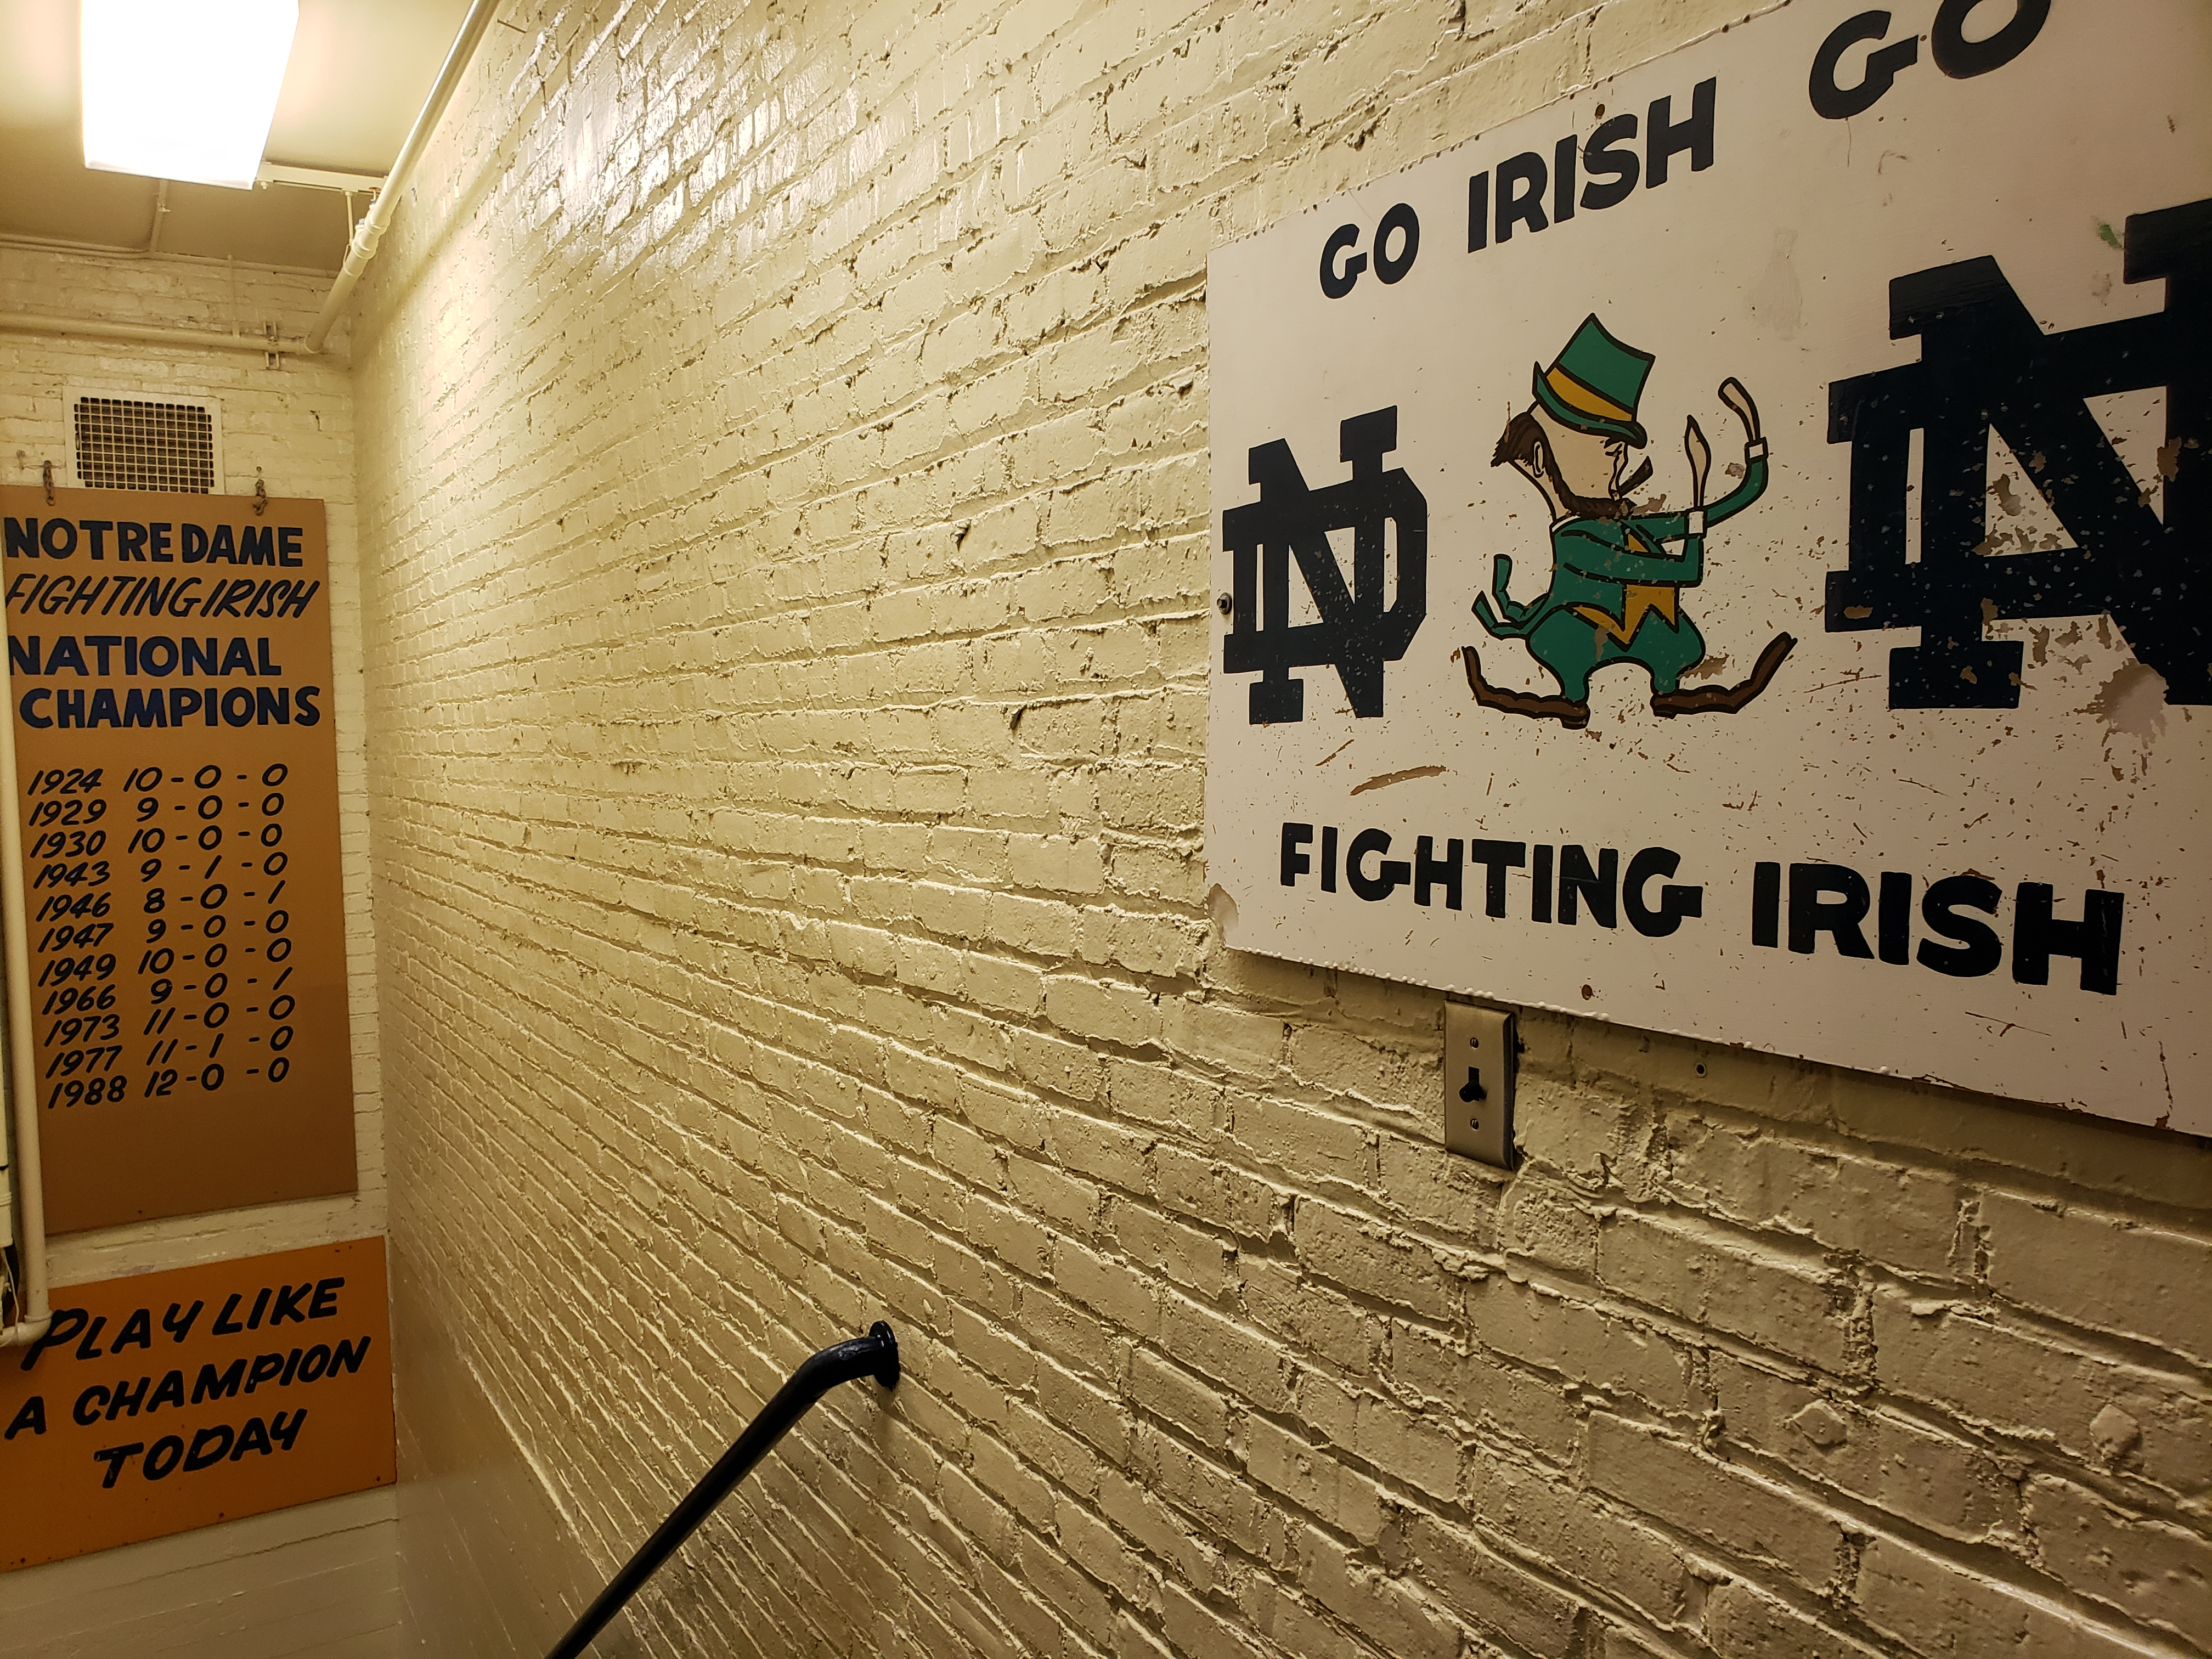 ND Football: Oh Captain, My Captain!